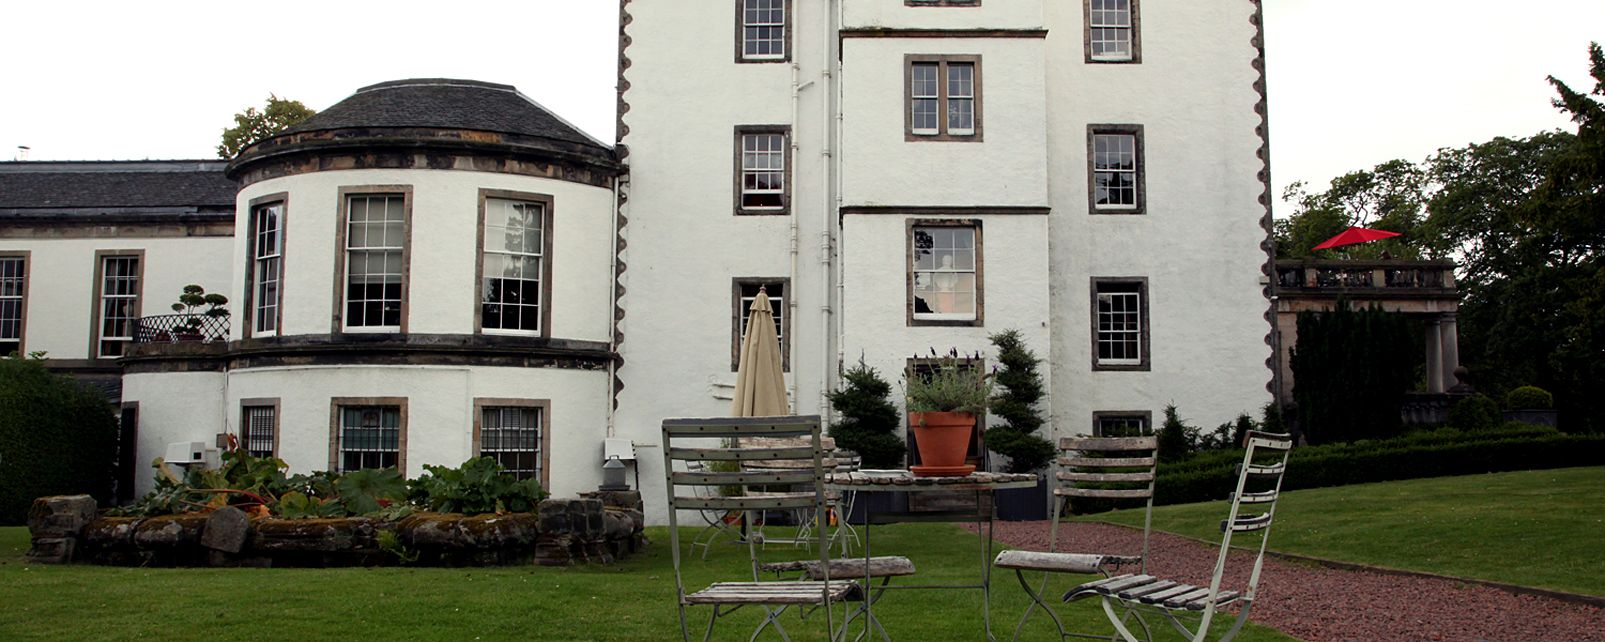 Hotel Prestonfield Edinburgh